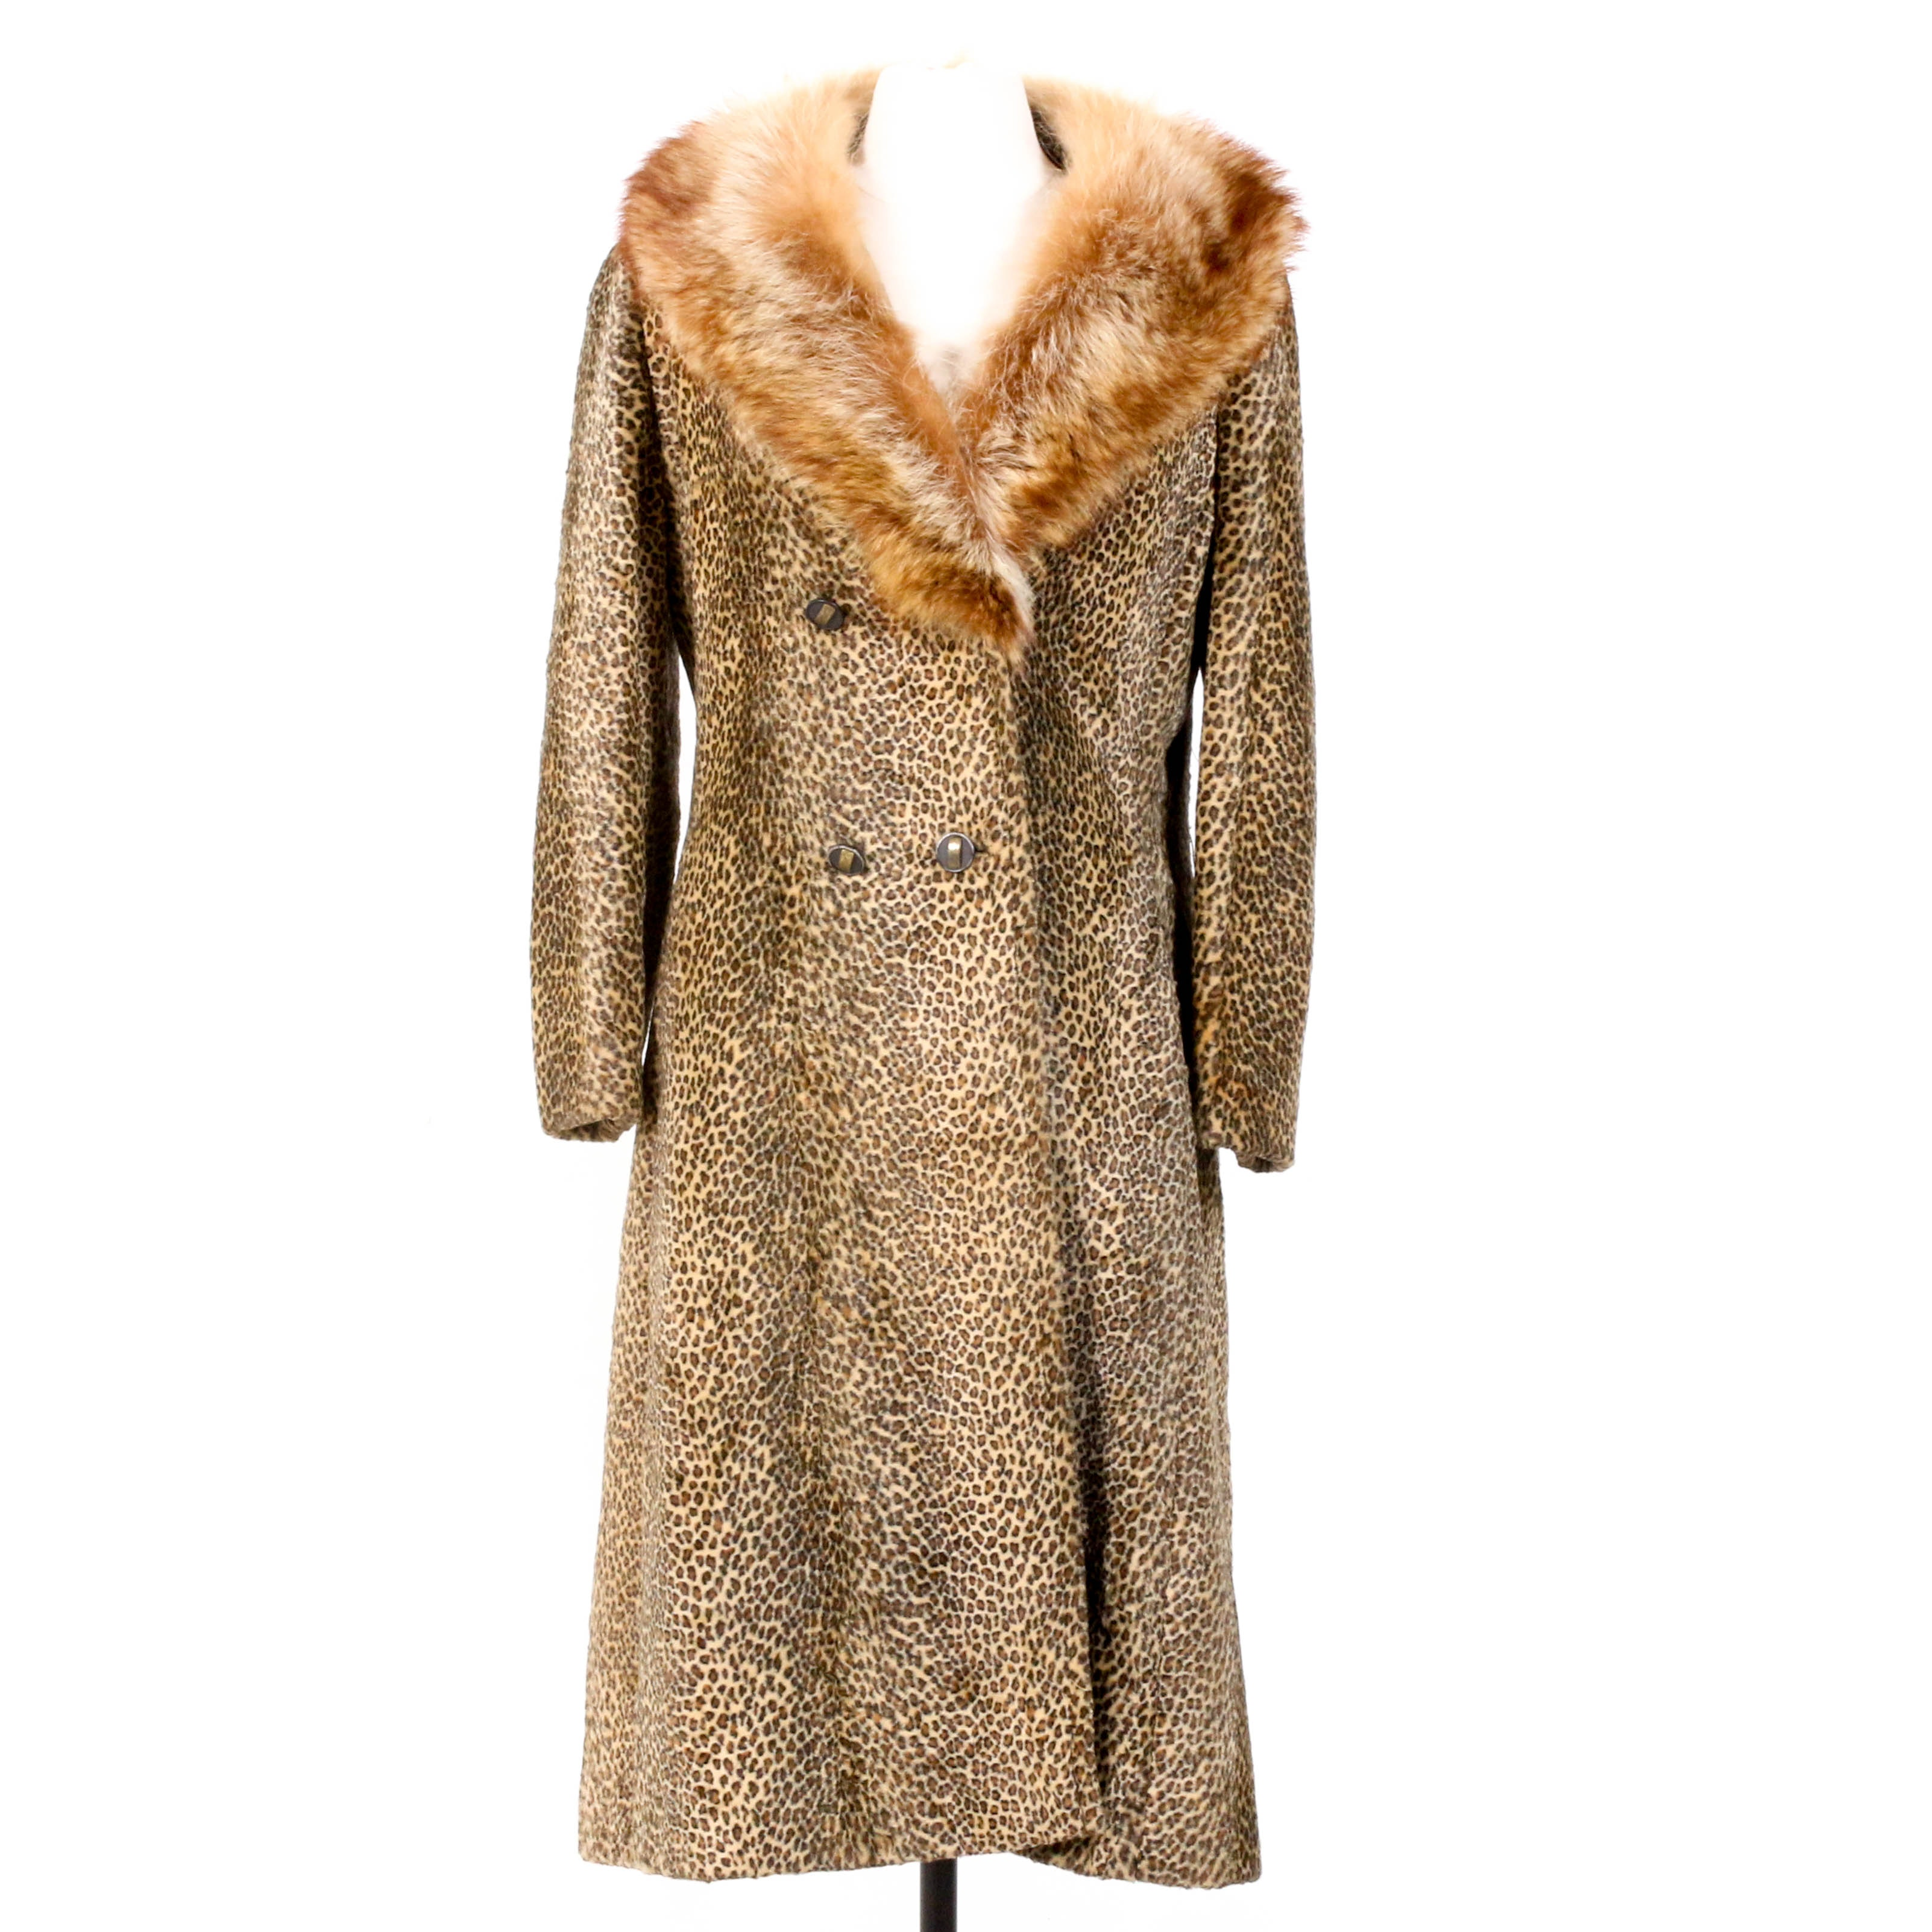 Faux Leopard Double-Breasted Coat with Fox Fur Collar, Vintage